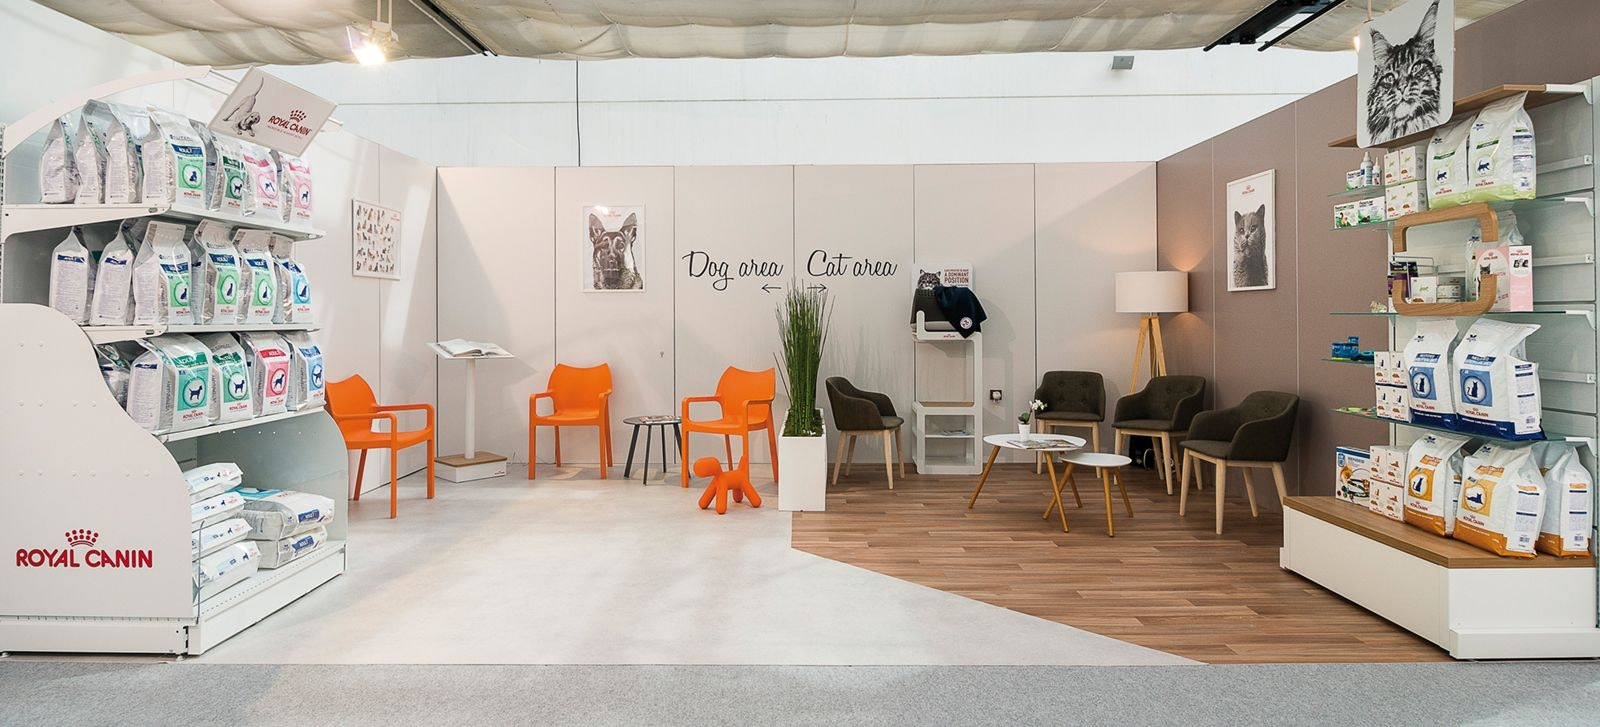 Example of a professional-looking waiting room.  All the mistakes above were fixed and the following facilities were added: 1. Separated waiting areas for dogs and cats with cat carrier trees.